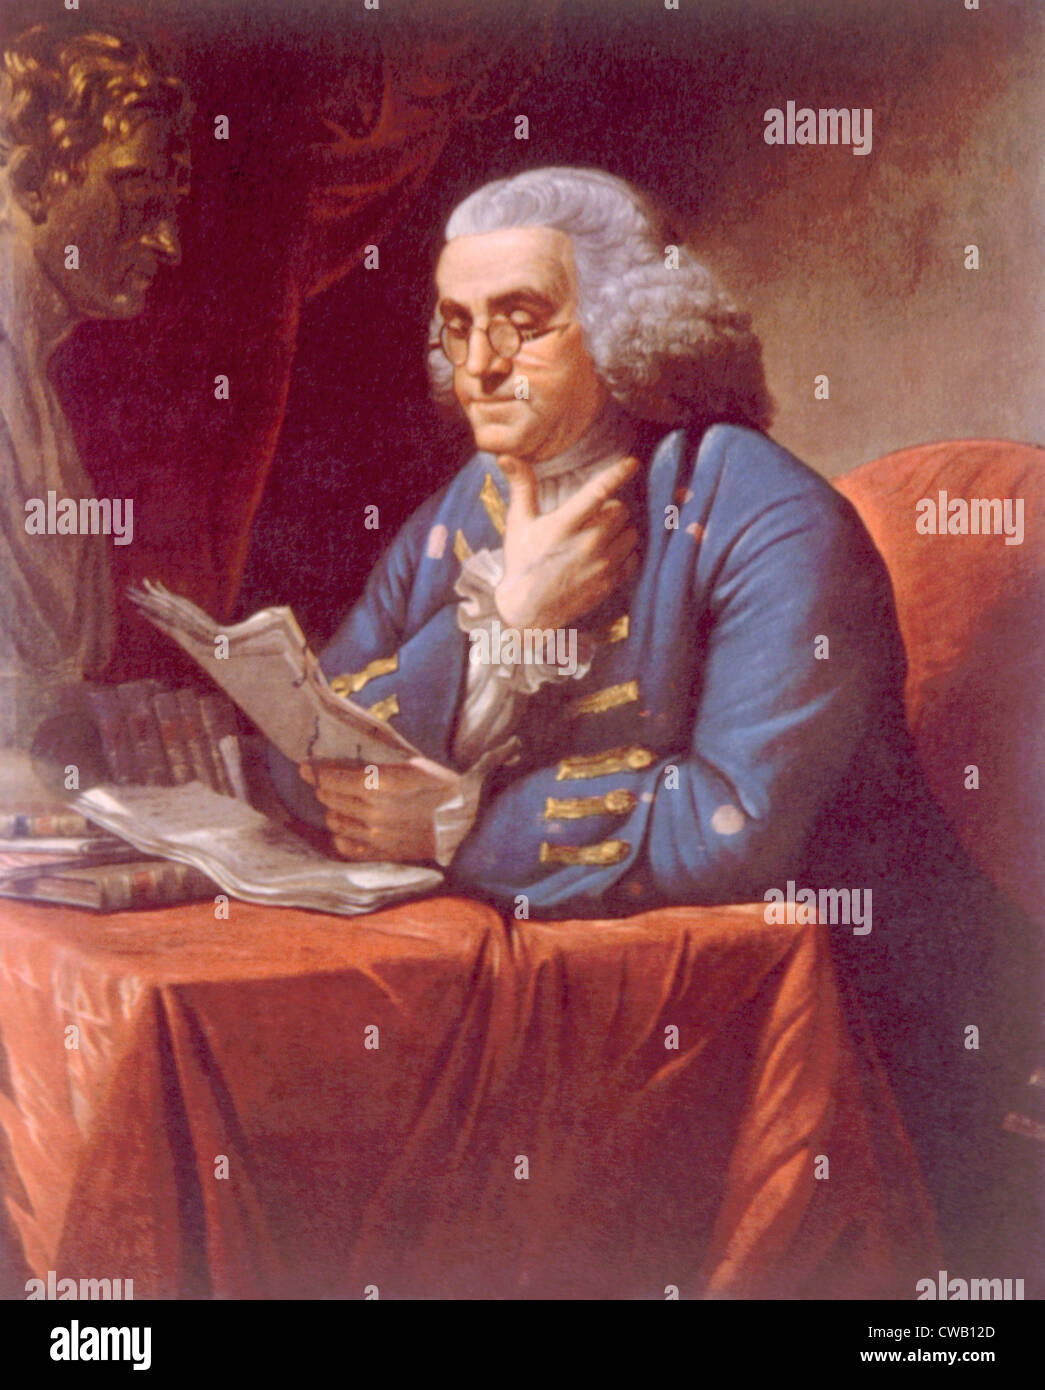 Benjamin Franklin (1706-1790), portrait by David Martin, 1767 Stock Photo